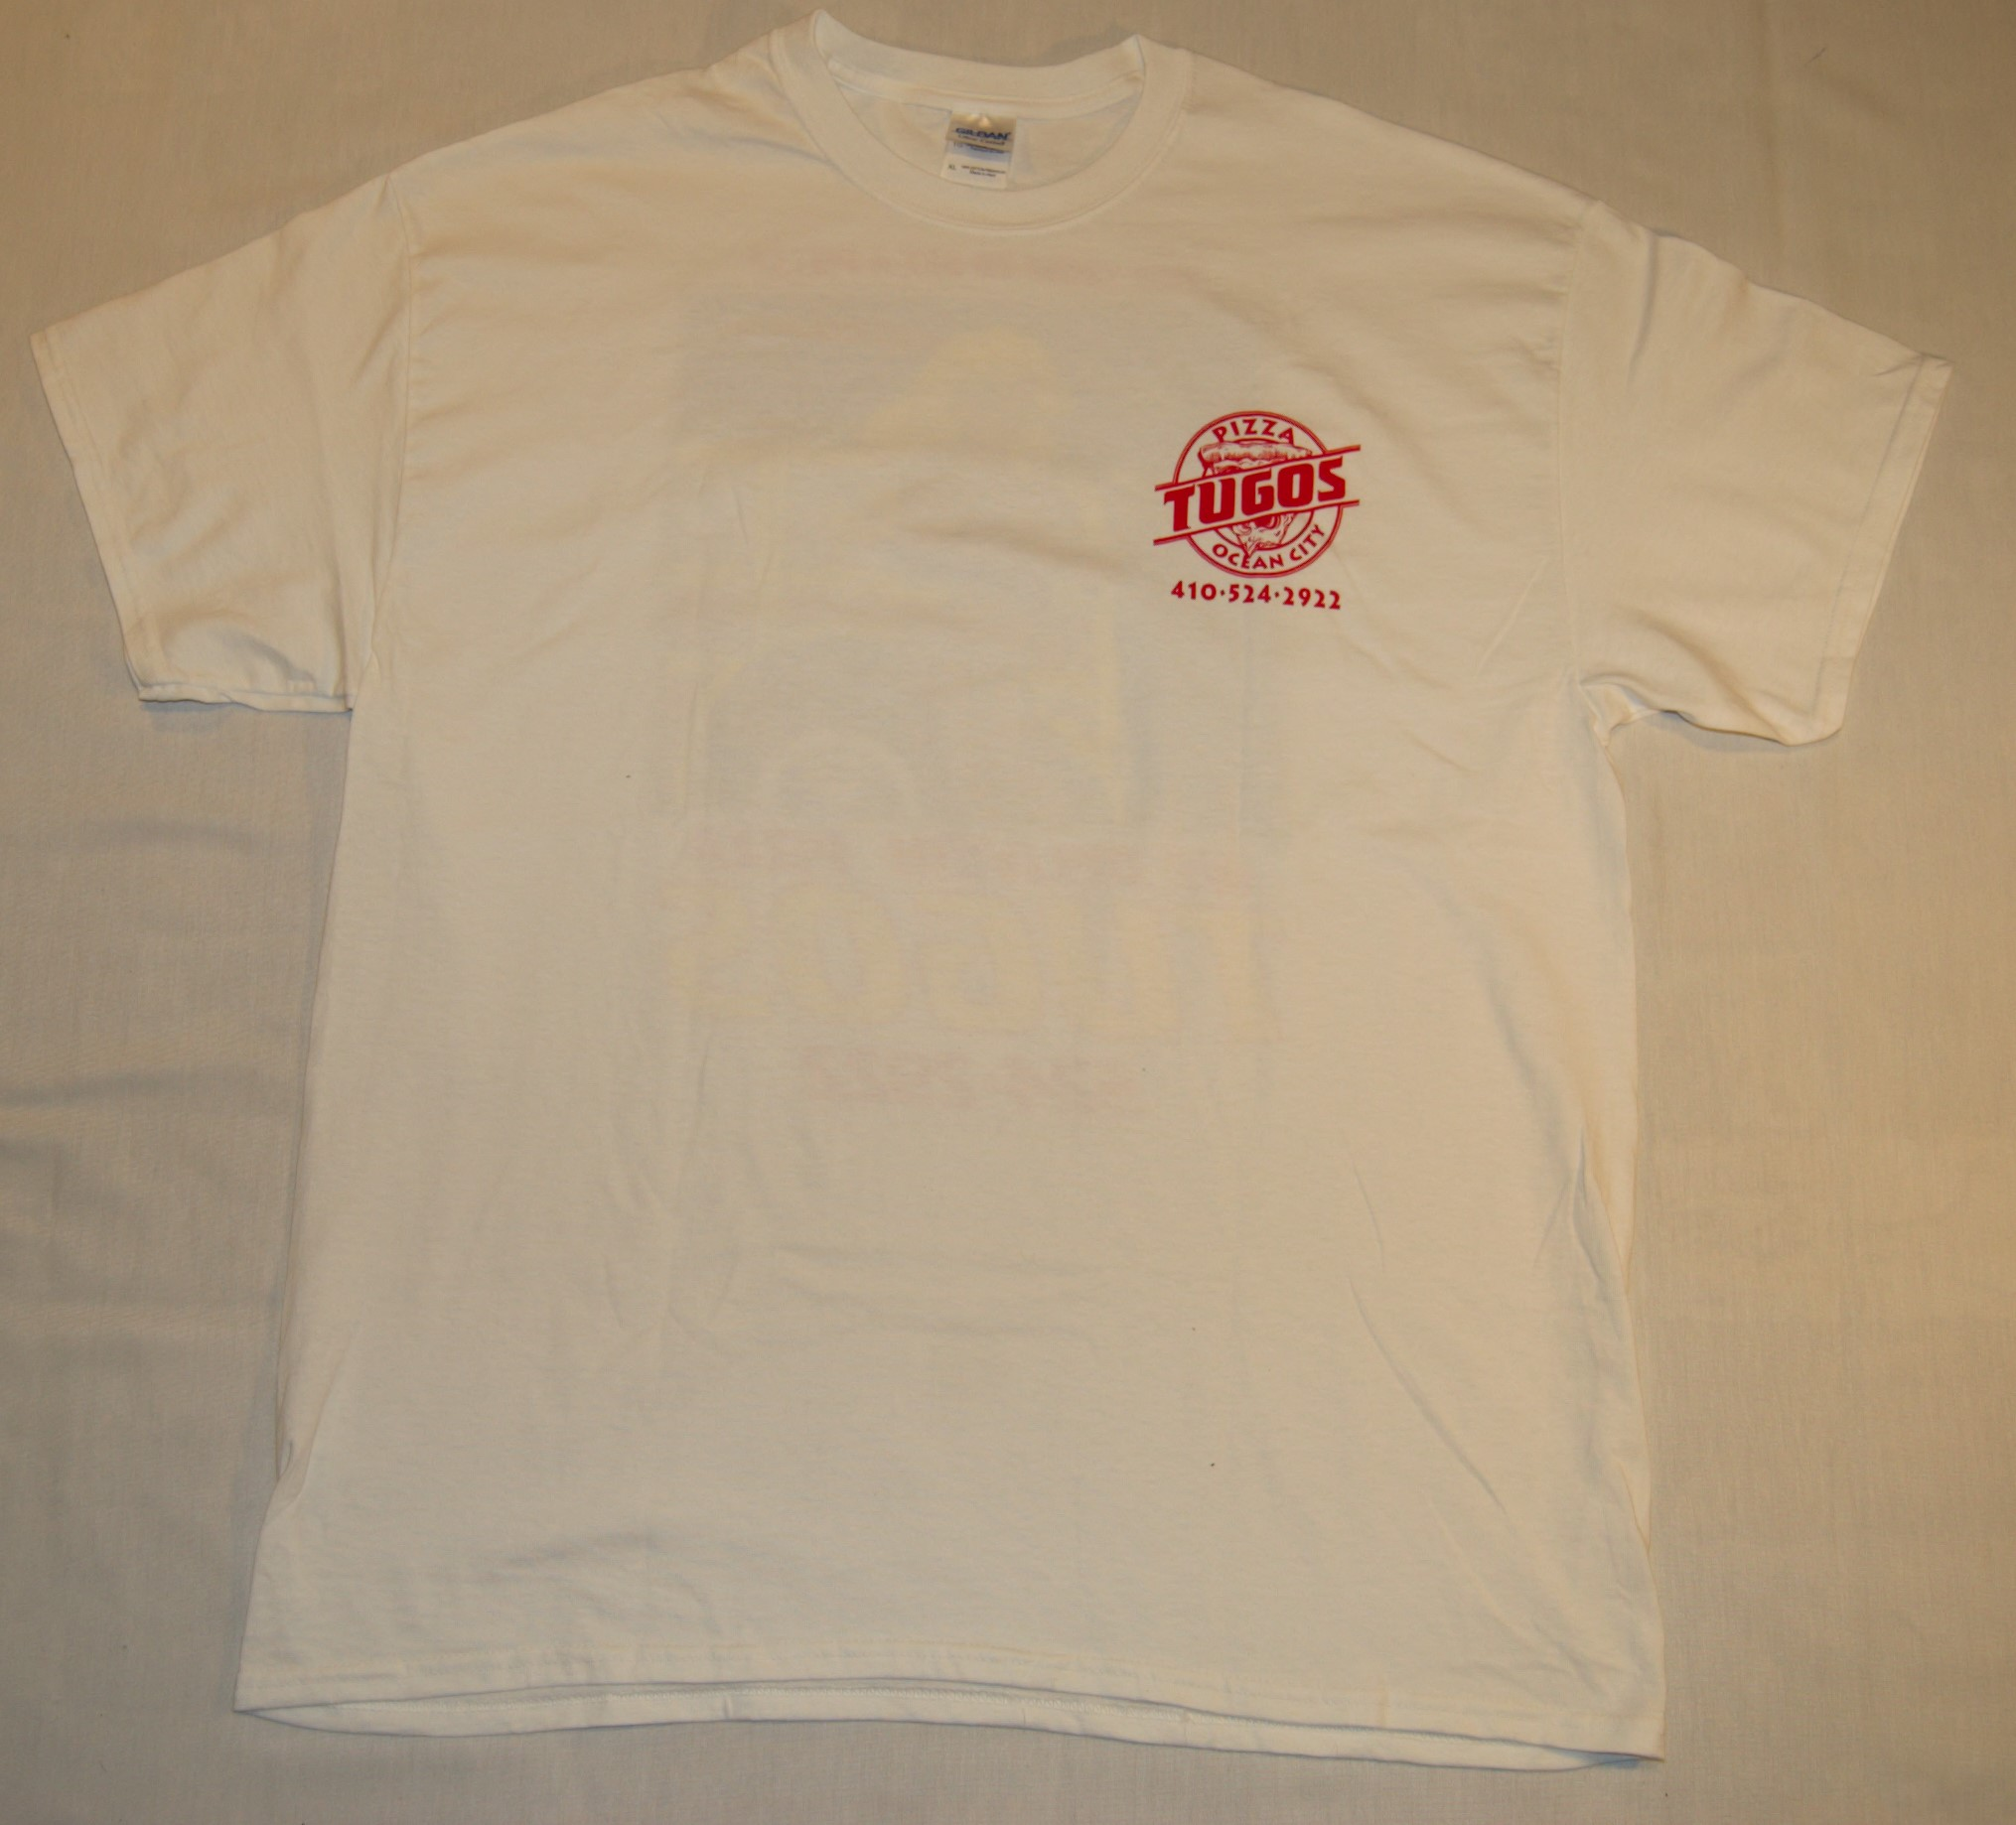 Tugos Delivery Shirt Front